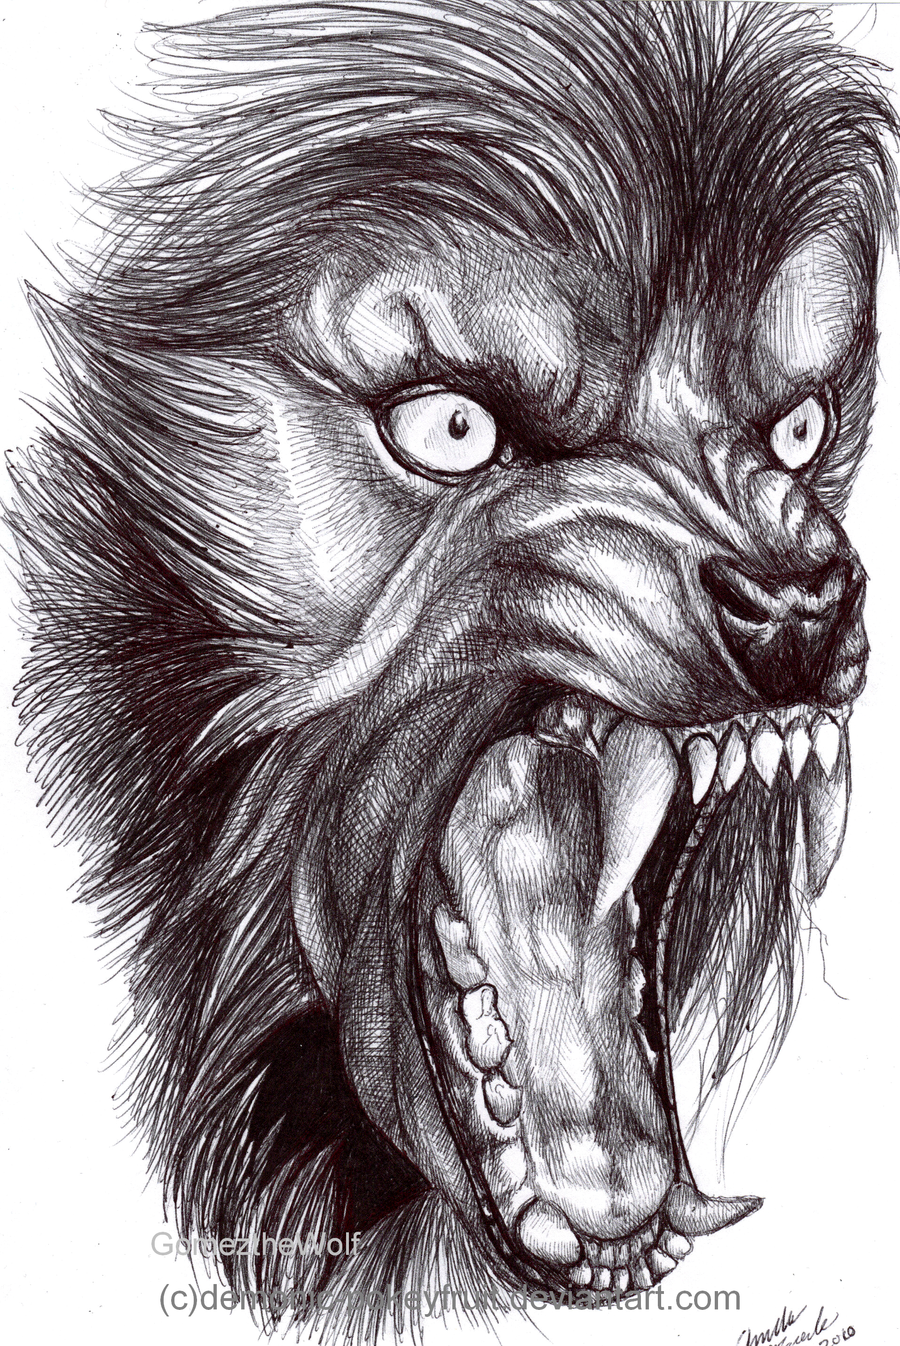 Scary werewolf drawings - photo#19